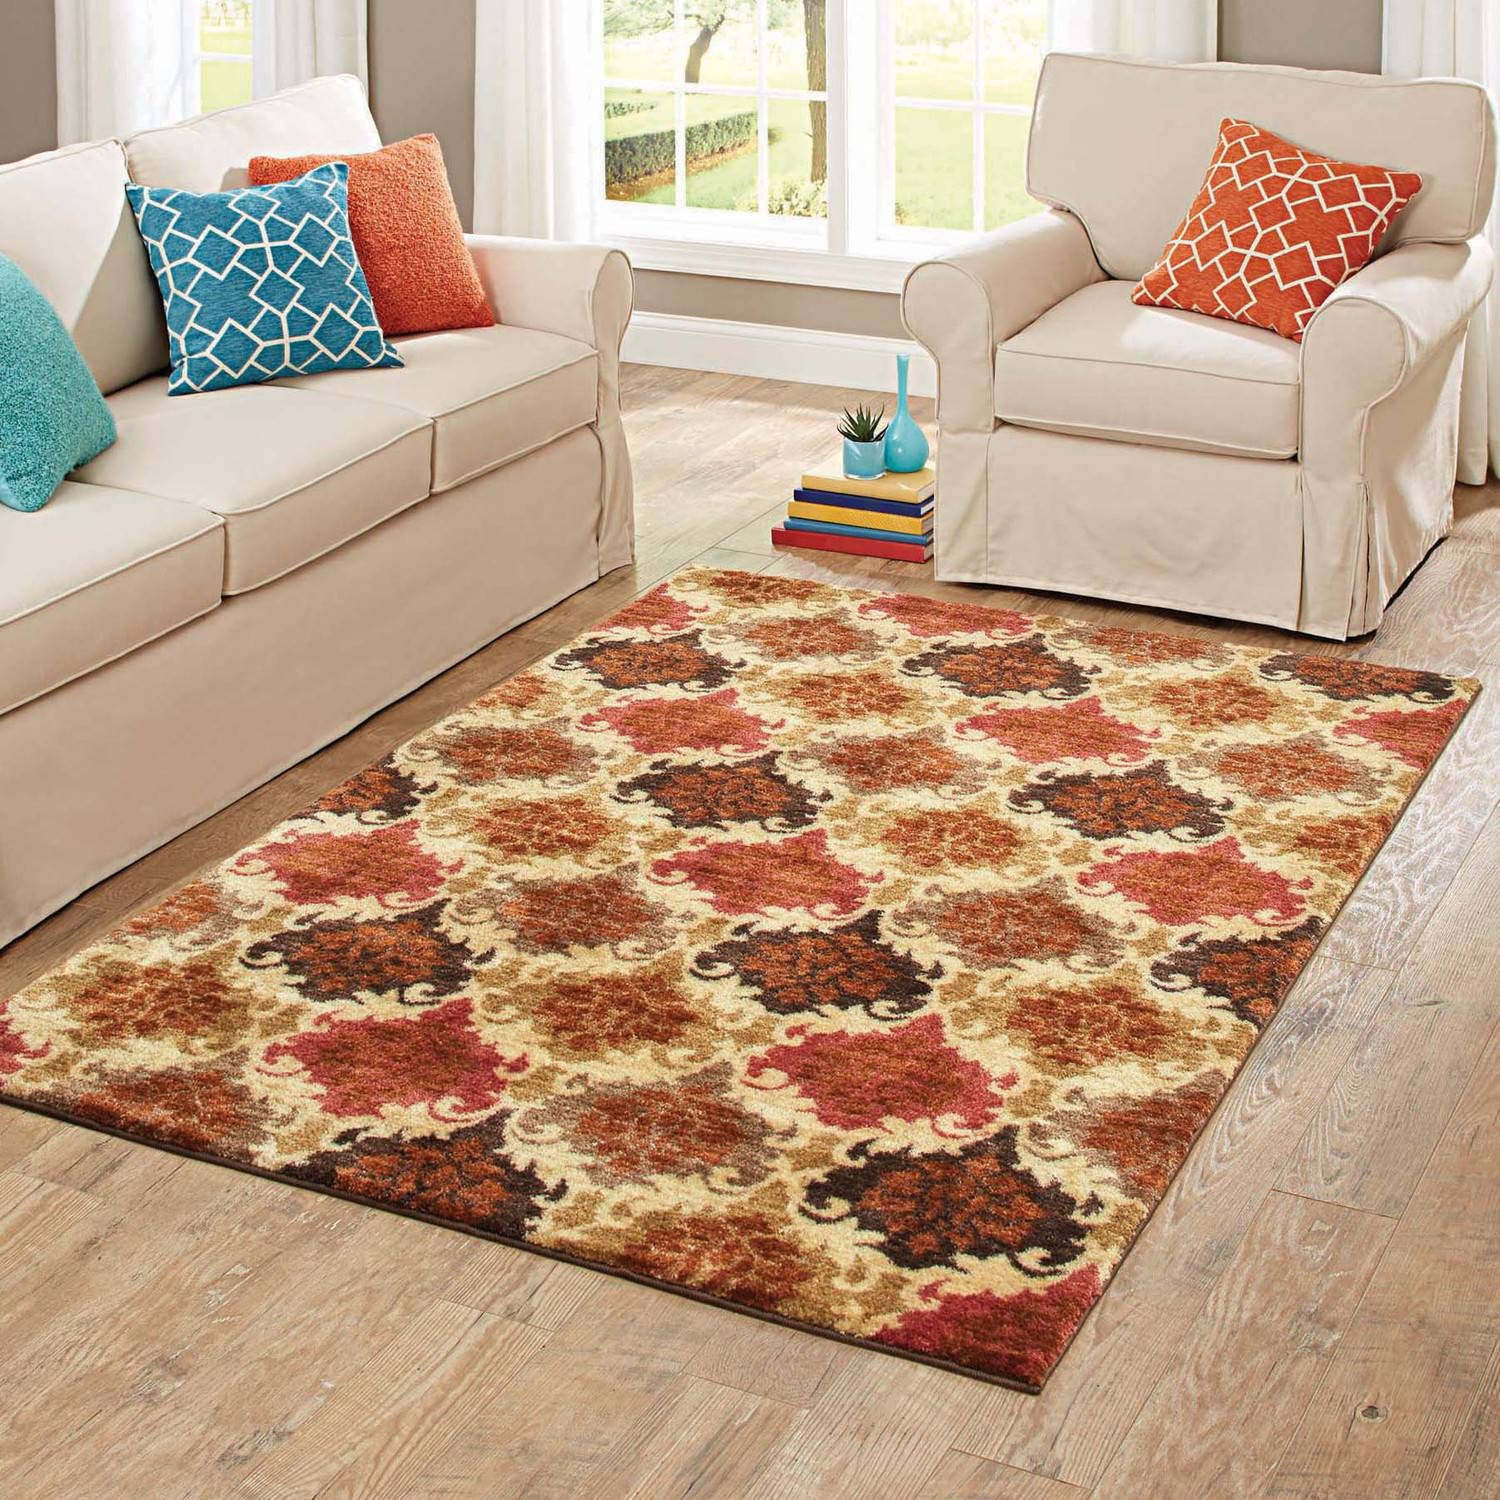 Beautiful 5x7 Area Rug Better Homes Better Homes Gardens Home